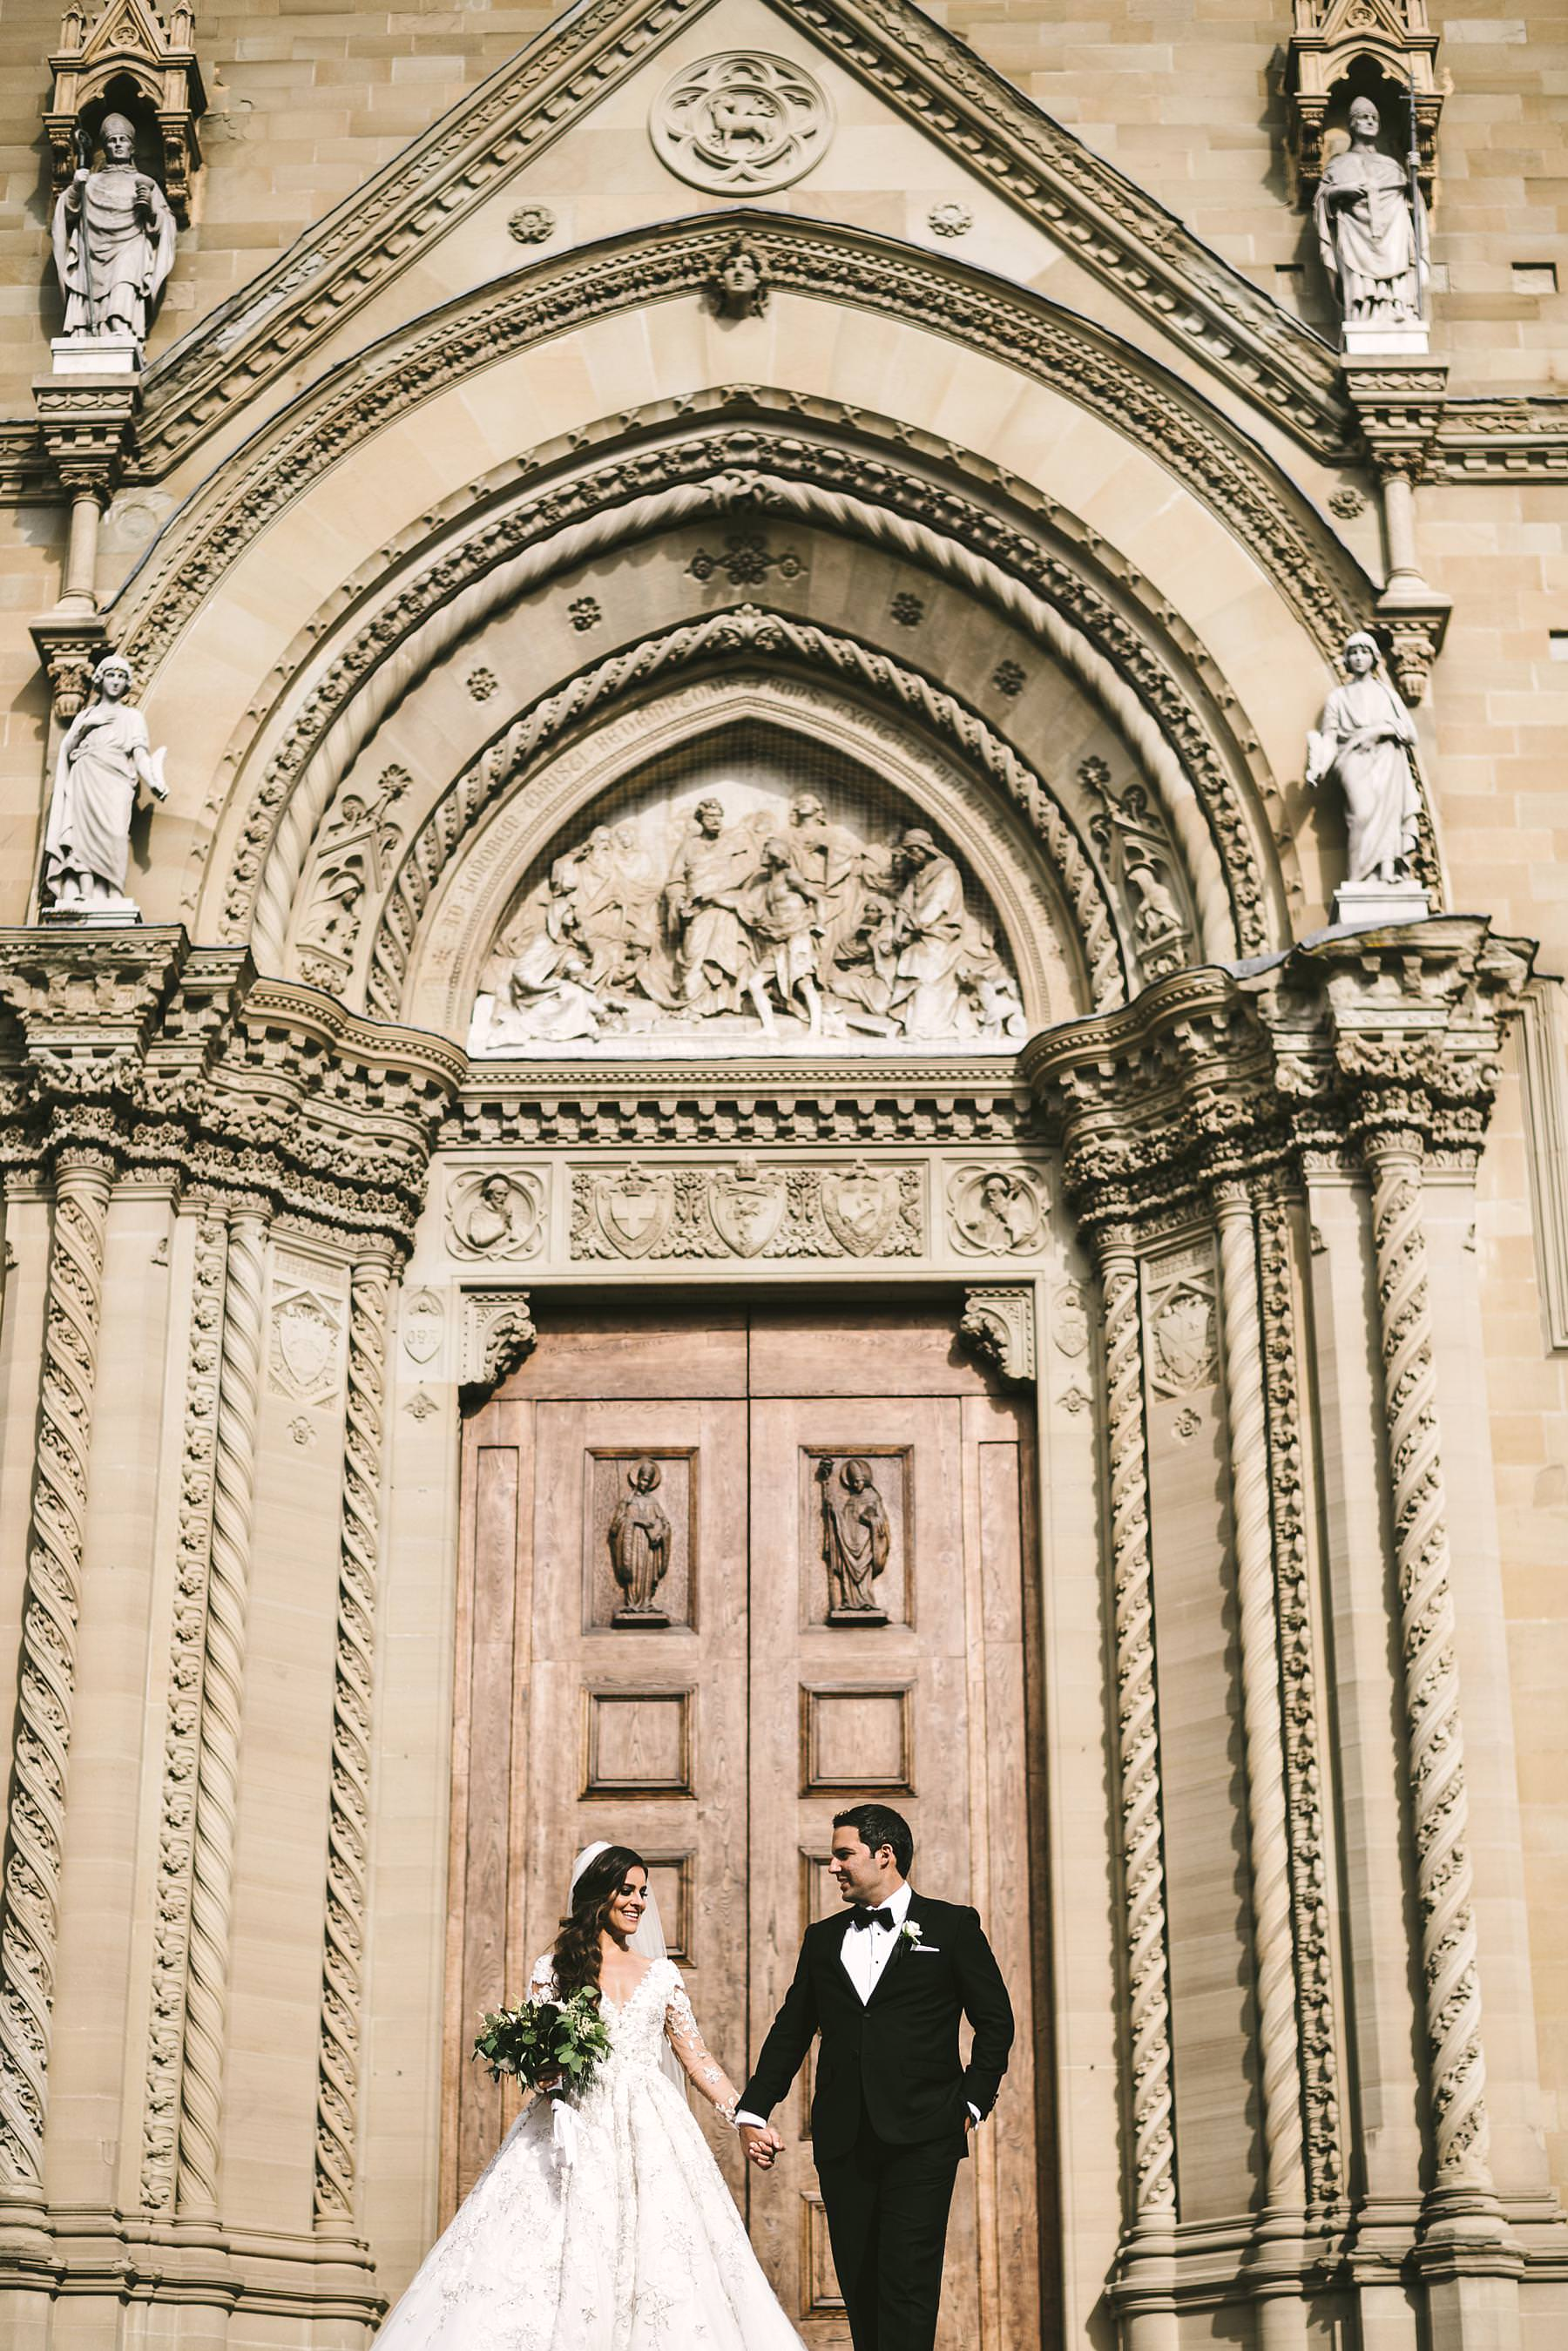 Elegant bride Ilyssa and groom Alex portrait session in Arezzo at Cathedral. Destination wedding in Tuscany at Arezzo and Valenzano Castle